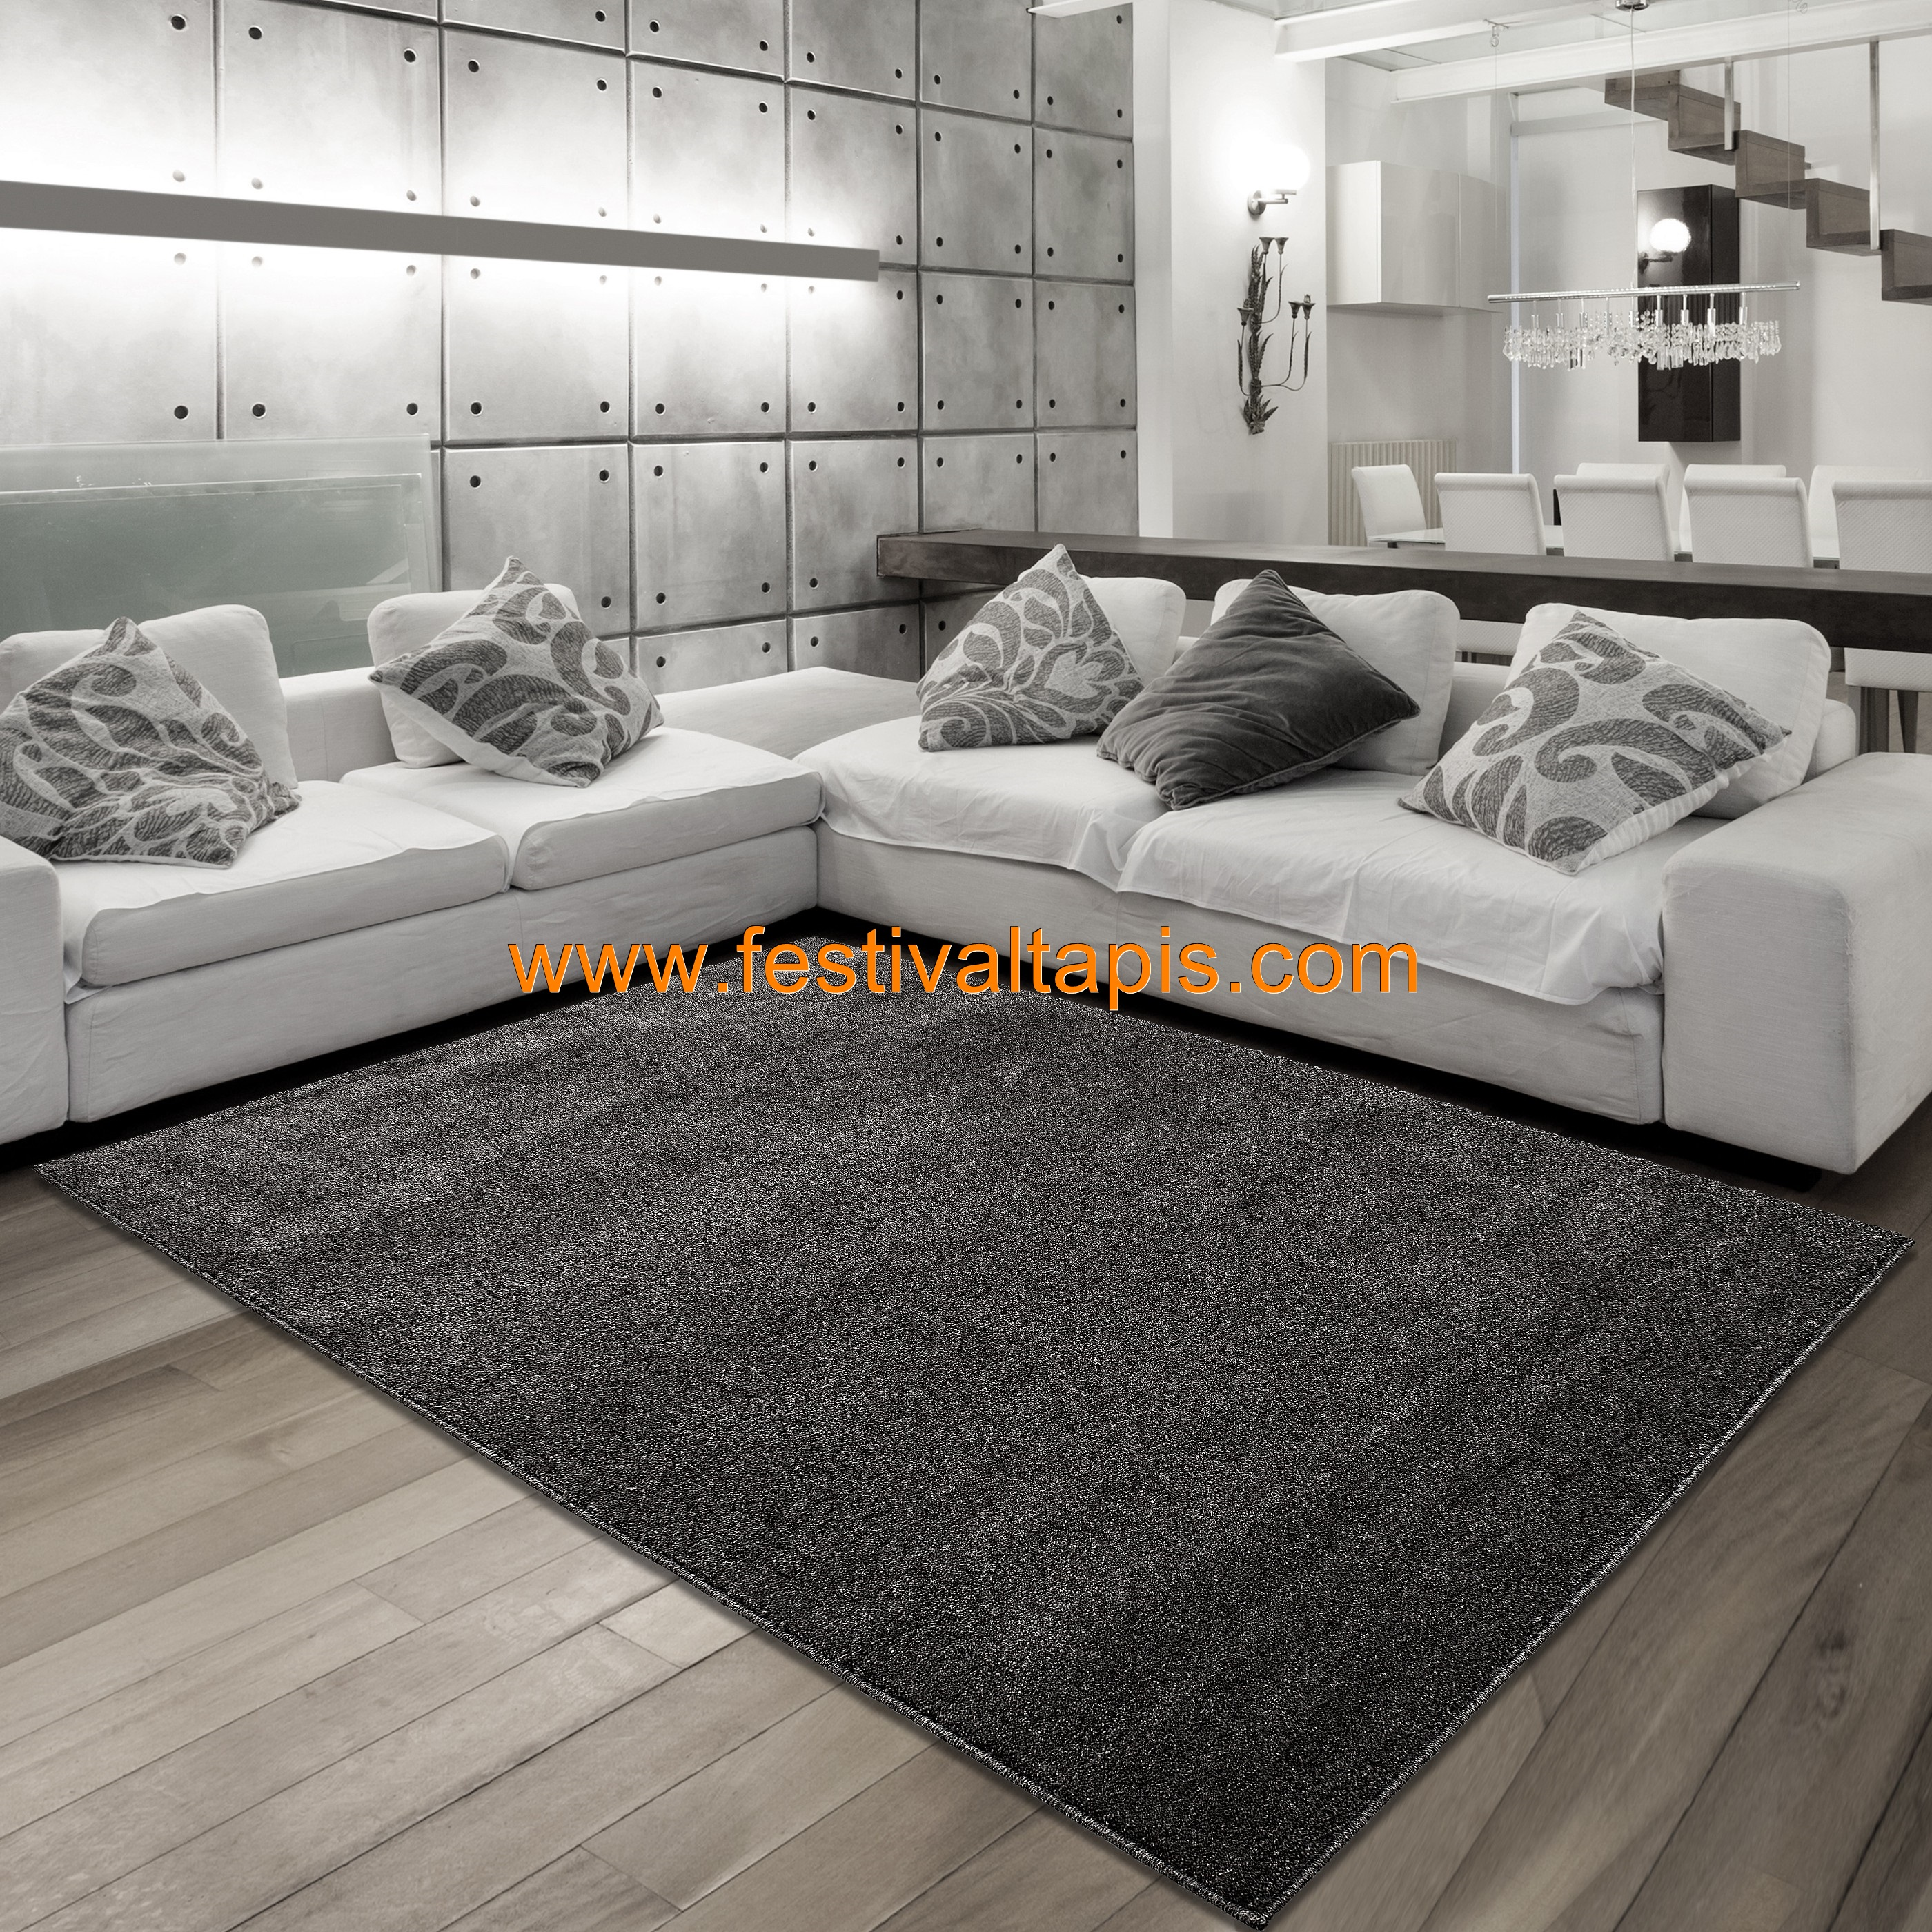 tapis salon gris anthracite id es de d coration. Black Bedroom Furniture Sets. Home Design Ideas